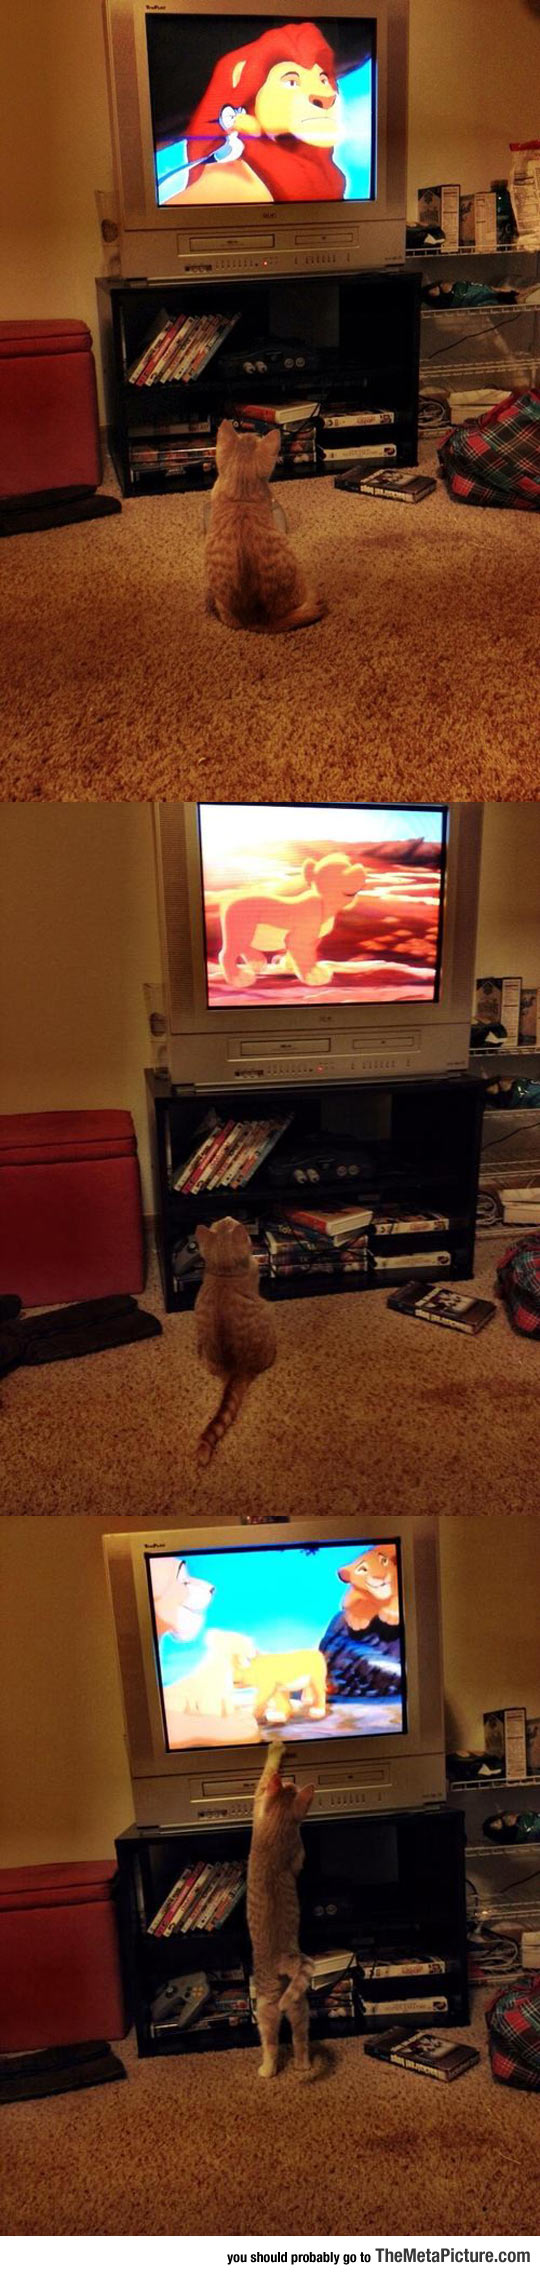 Watching The Lion King